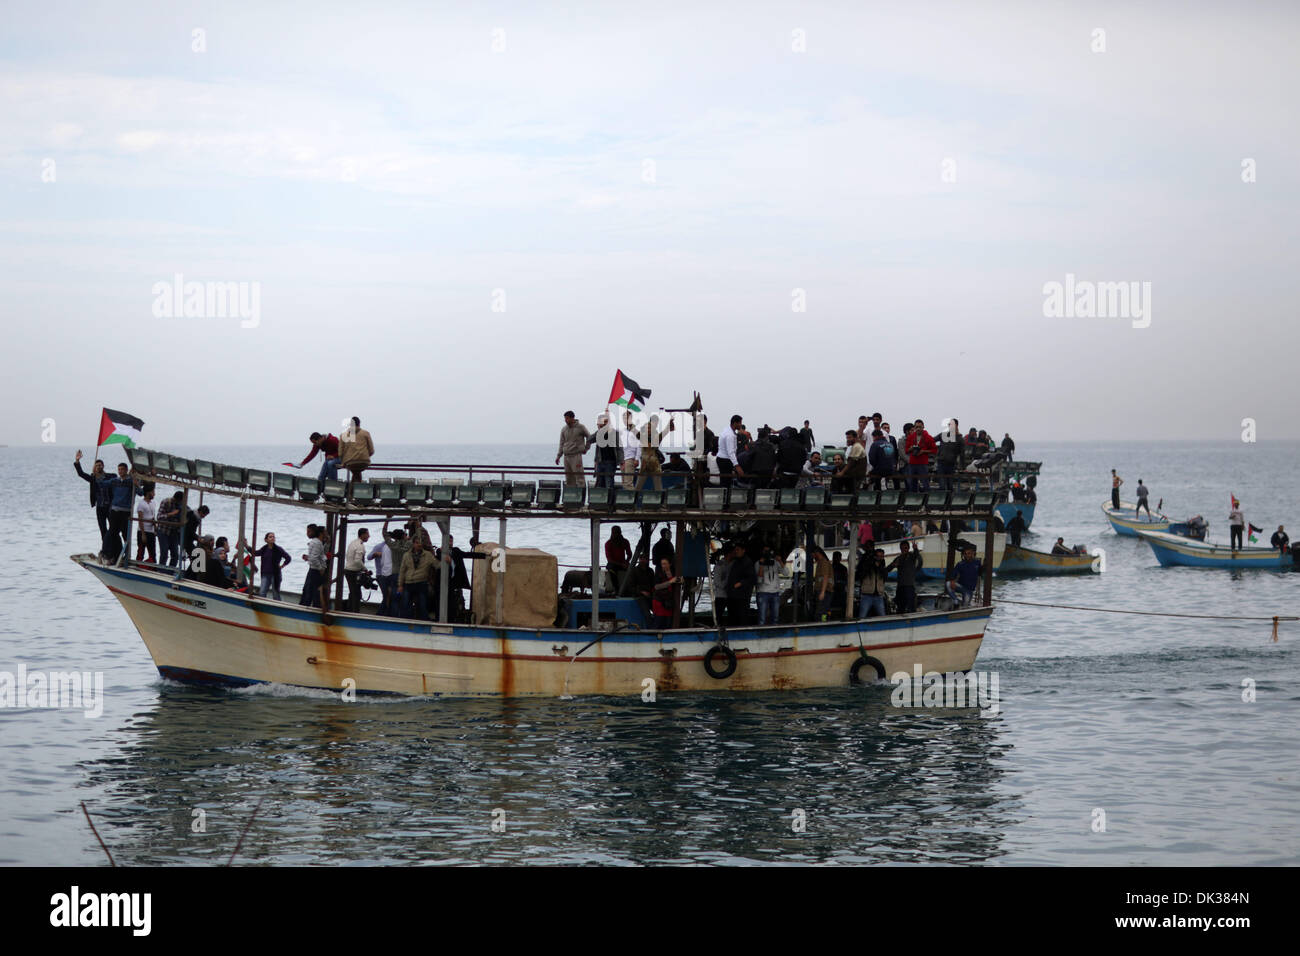 Gaza. 2nd Dec, 2013. Palestinians sail their boats as part of a convoy which launched at the initiative of the 'Intifada Youth Coalition' to break the naval blockade of Gaza as a protest against the Israeli siege in Gaza port on Dec. 2, 2013. Credit: Xinhua/Wissam Nassar/Alamy Live News - Stock Image